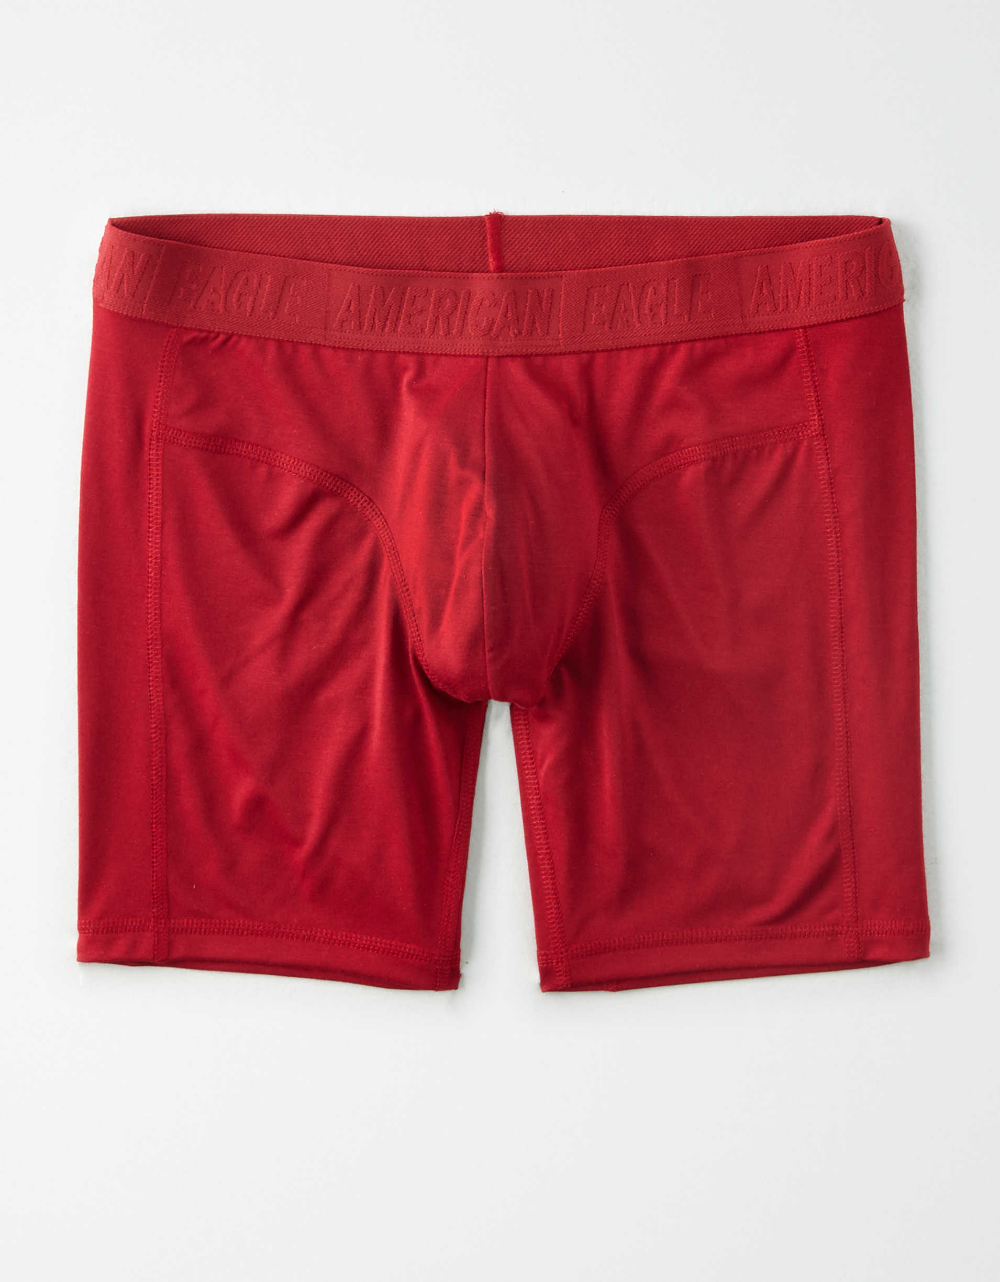 Sheep On Red Boxer Briefs Mens Underwear Pack Seamless Comfort Soft